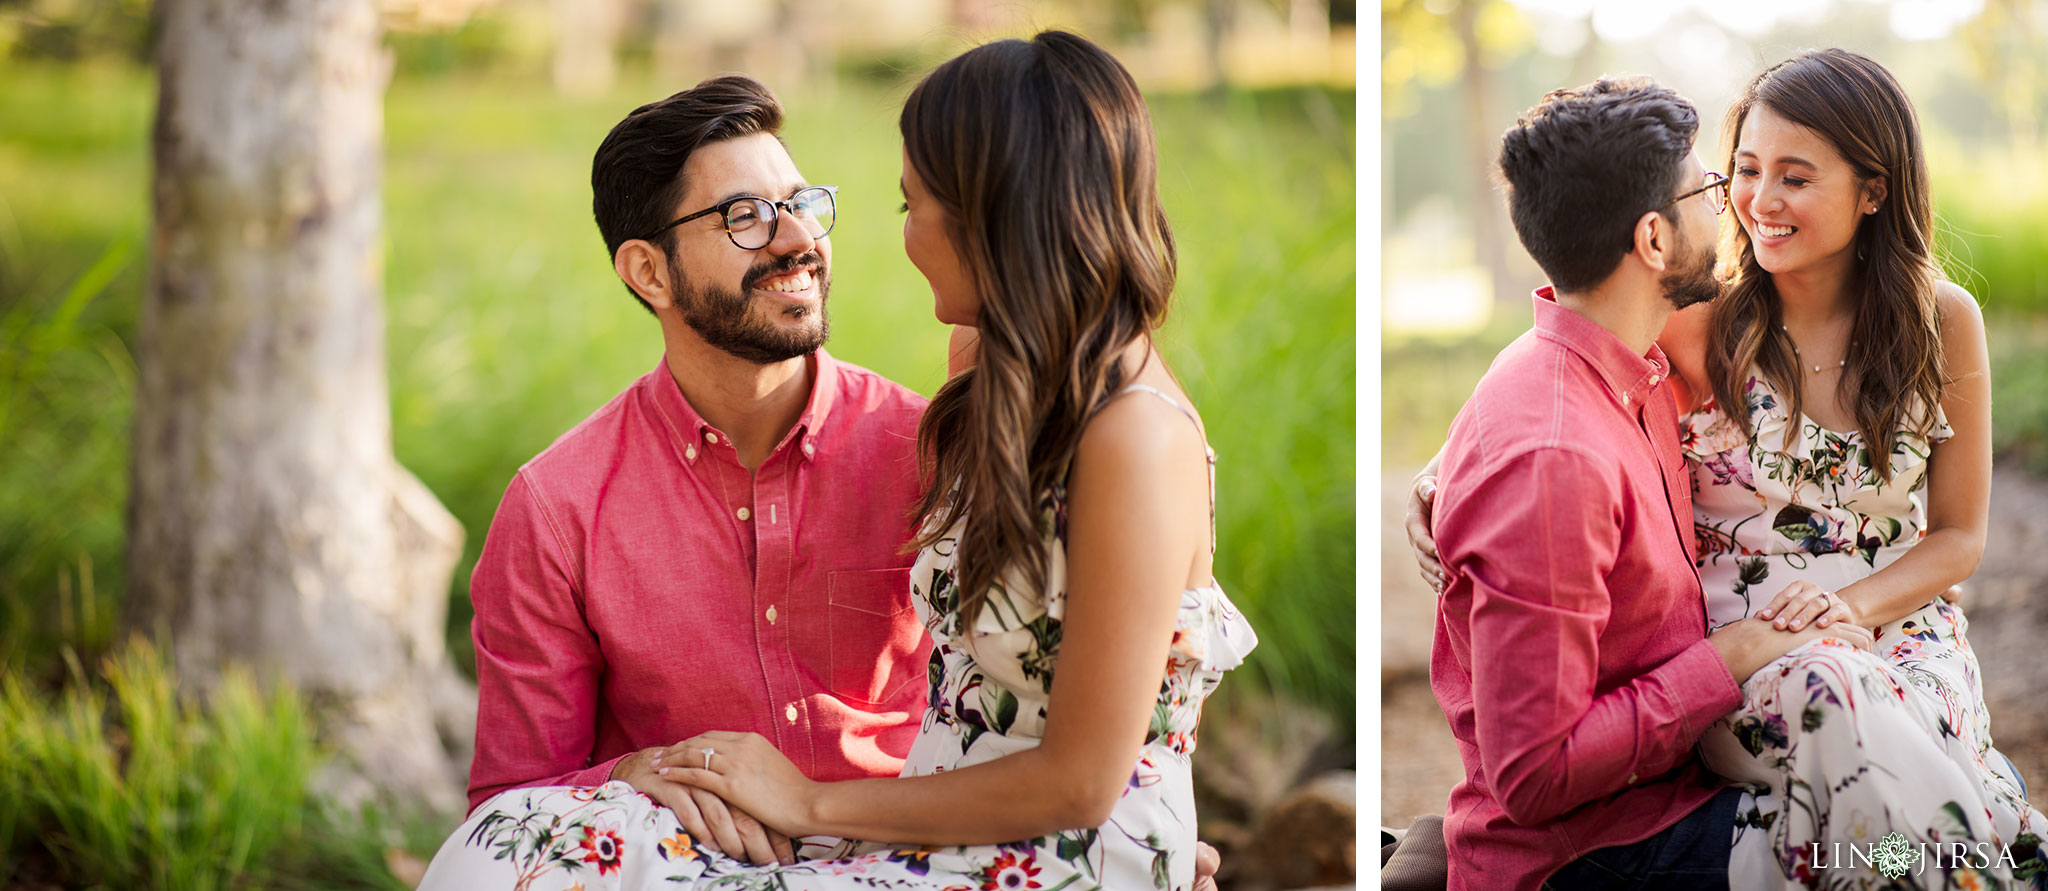 009 jeffrey open space engagement photography